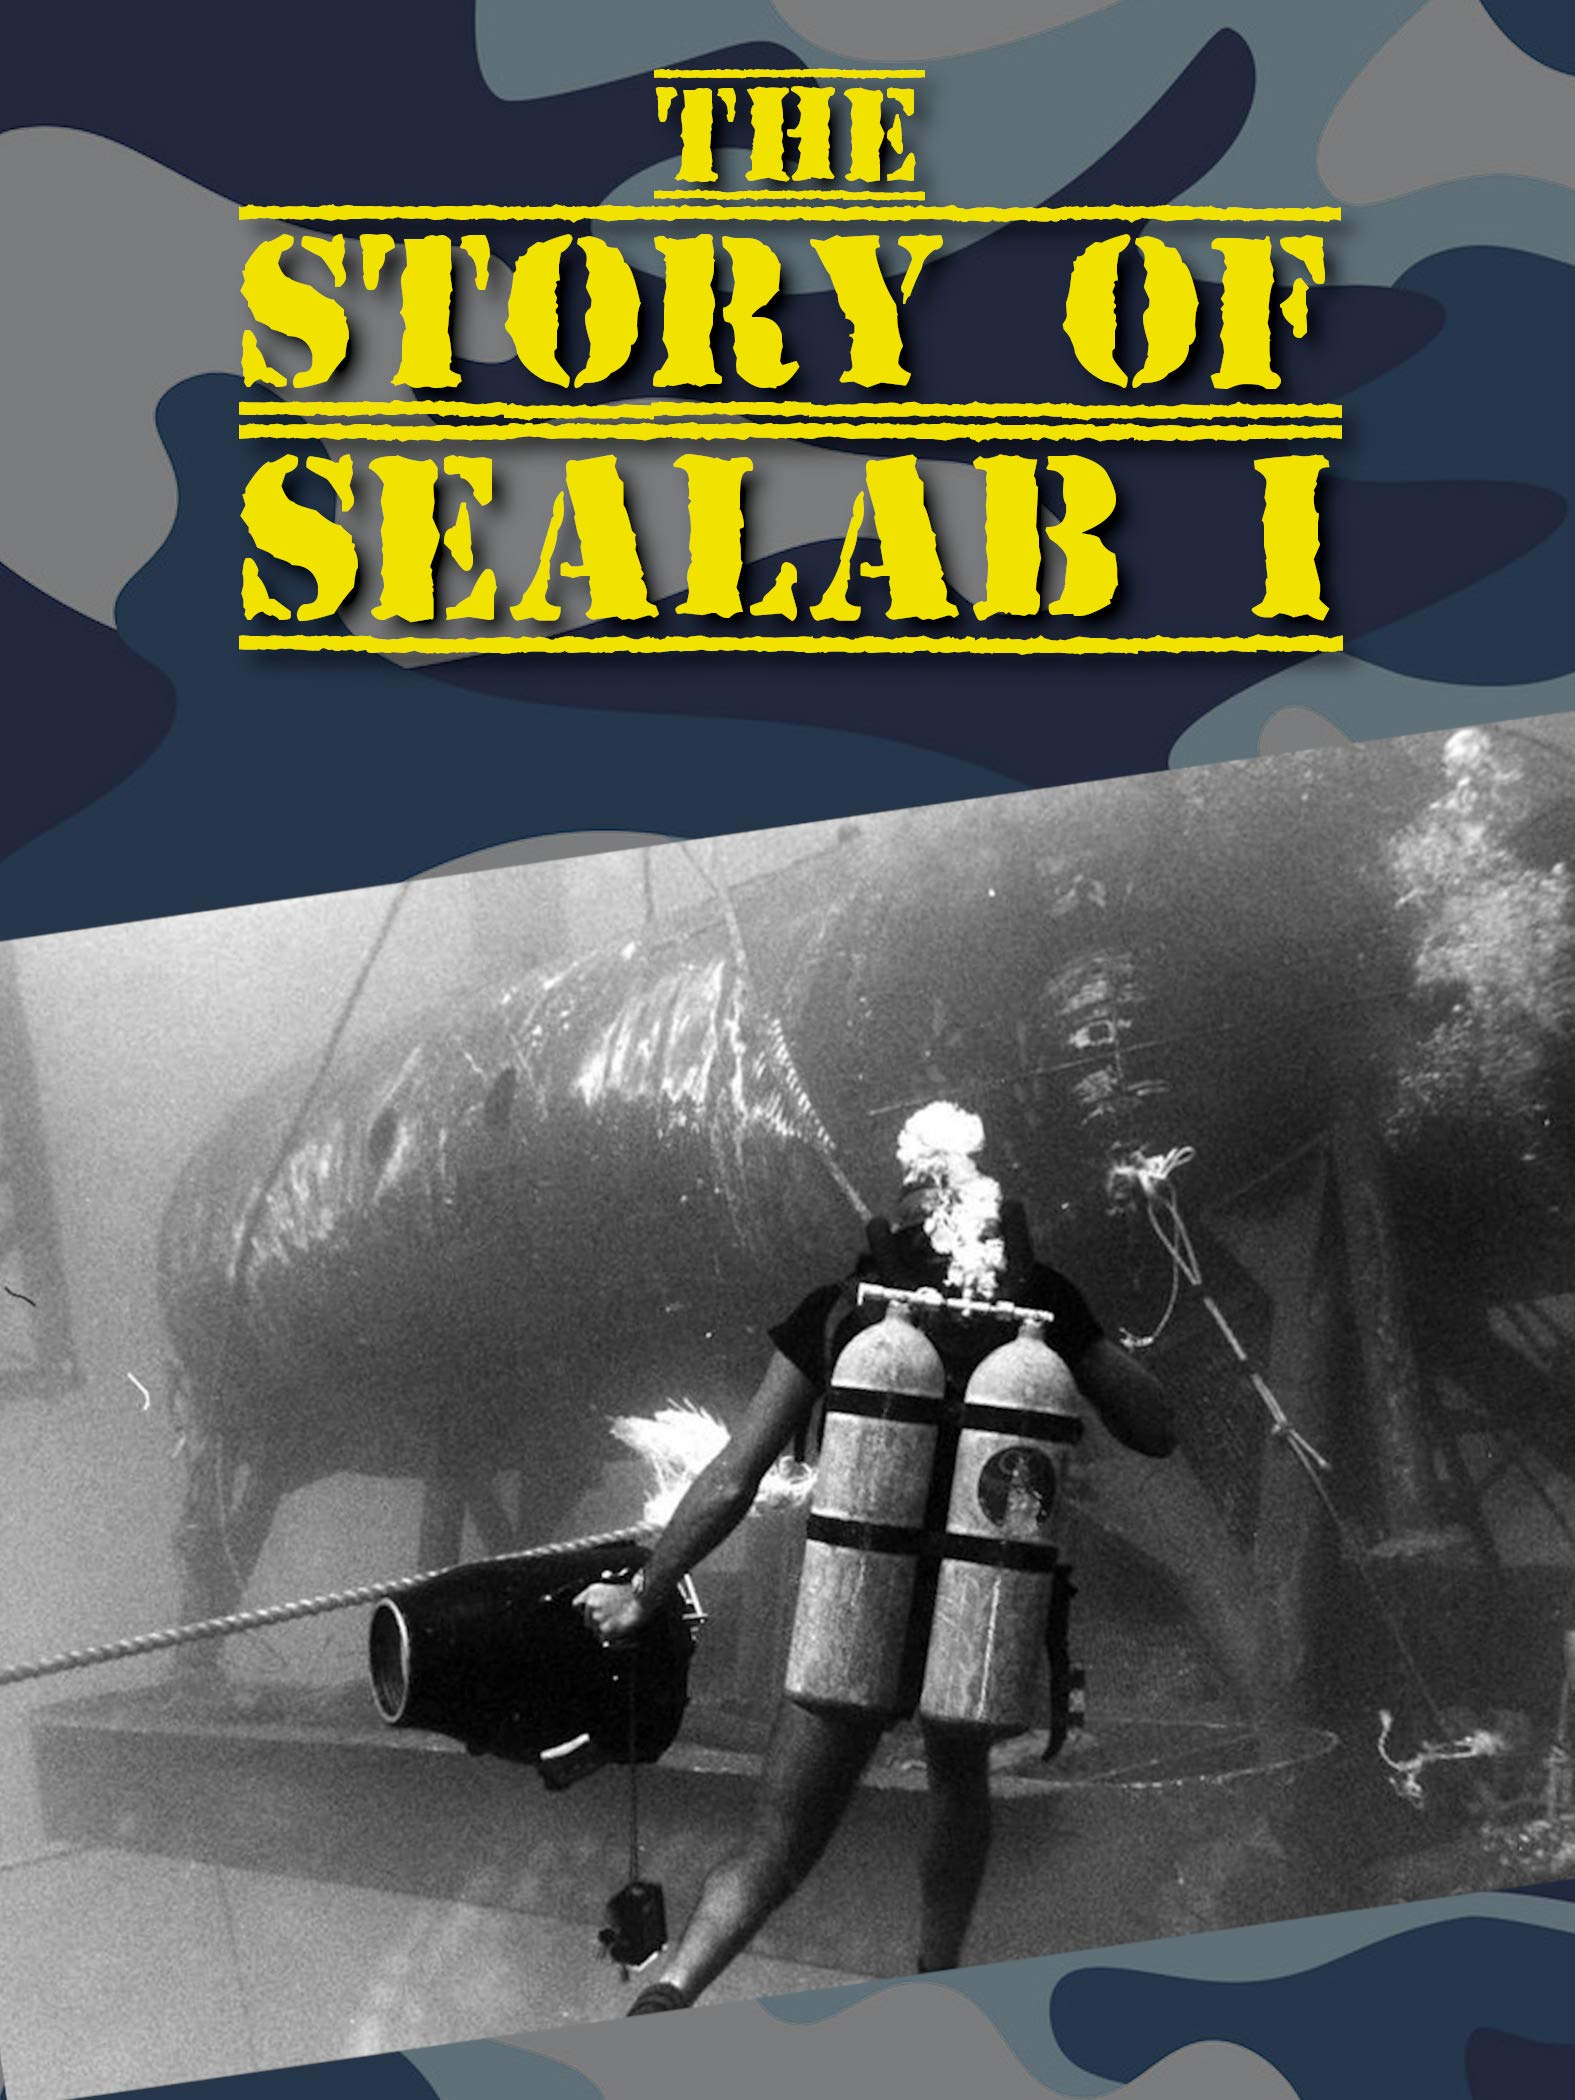 The Story of Sealab I